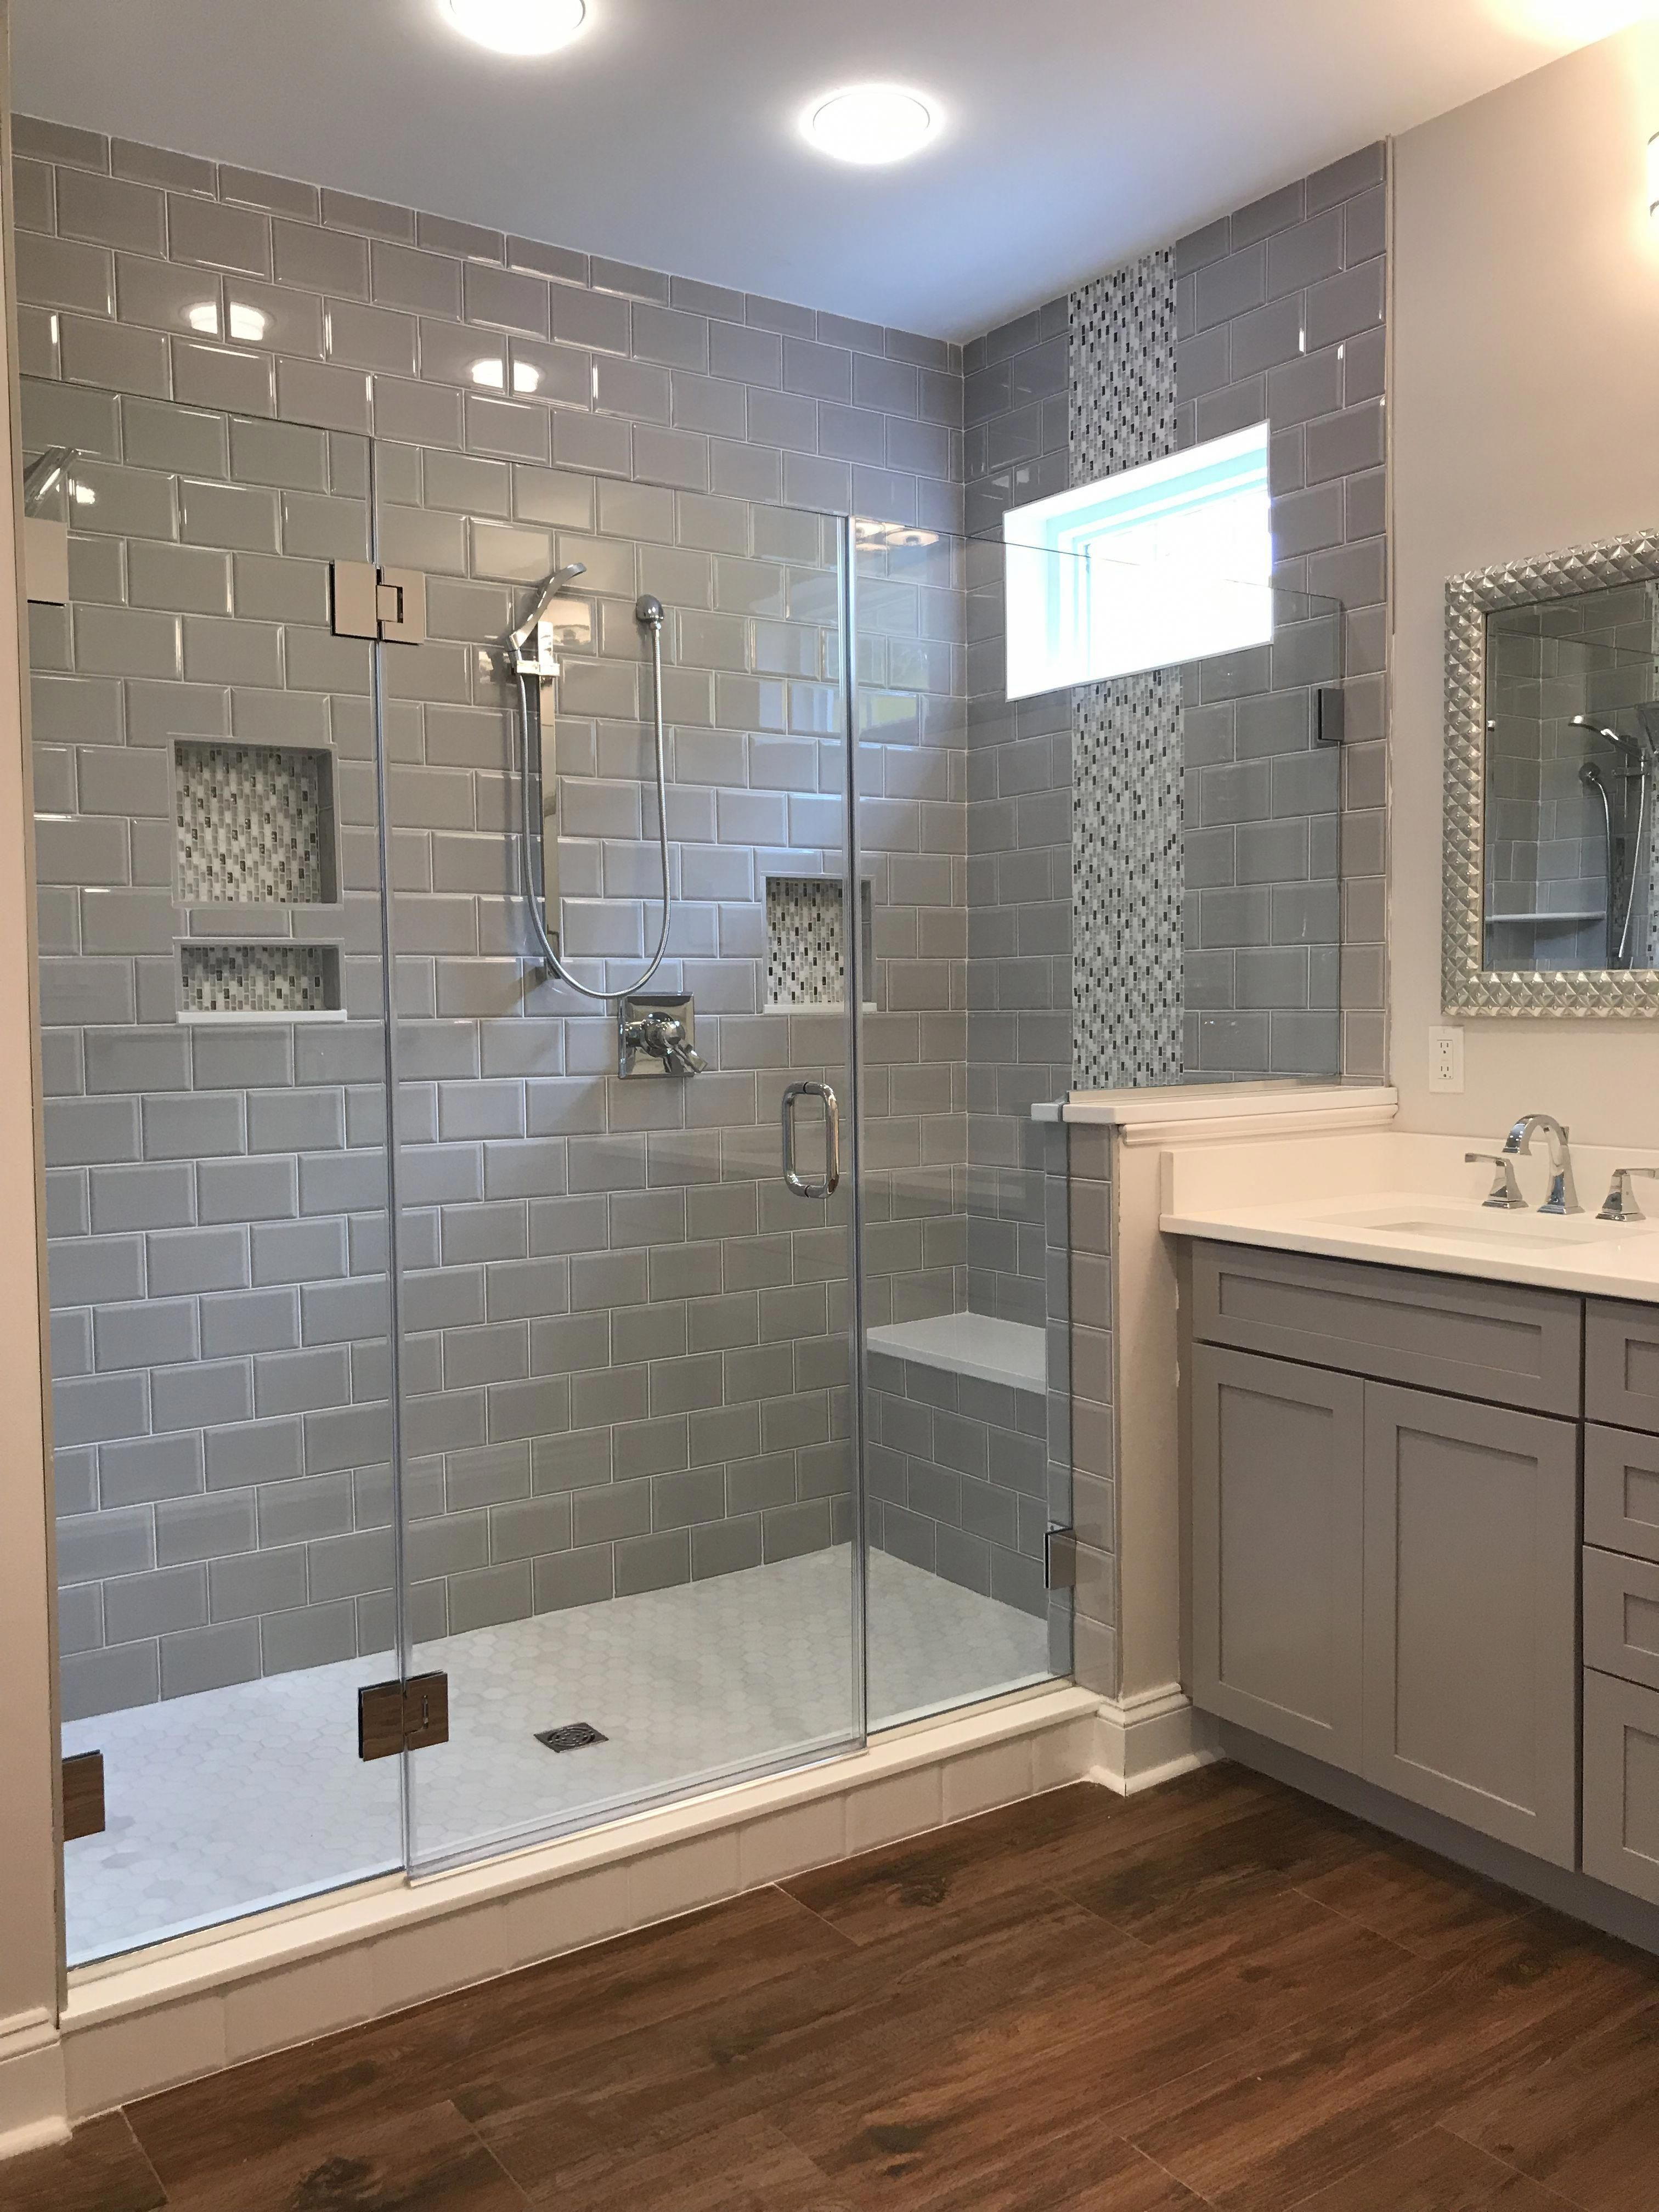 Shower Design Ideas That Can Put Your Bathroom Over The Top – Home Designs